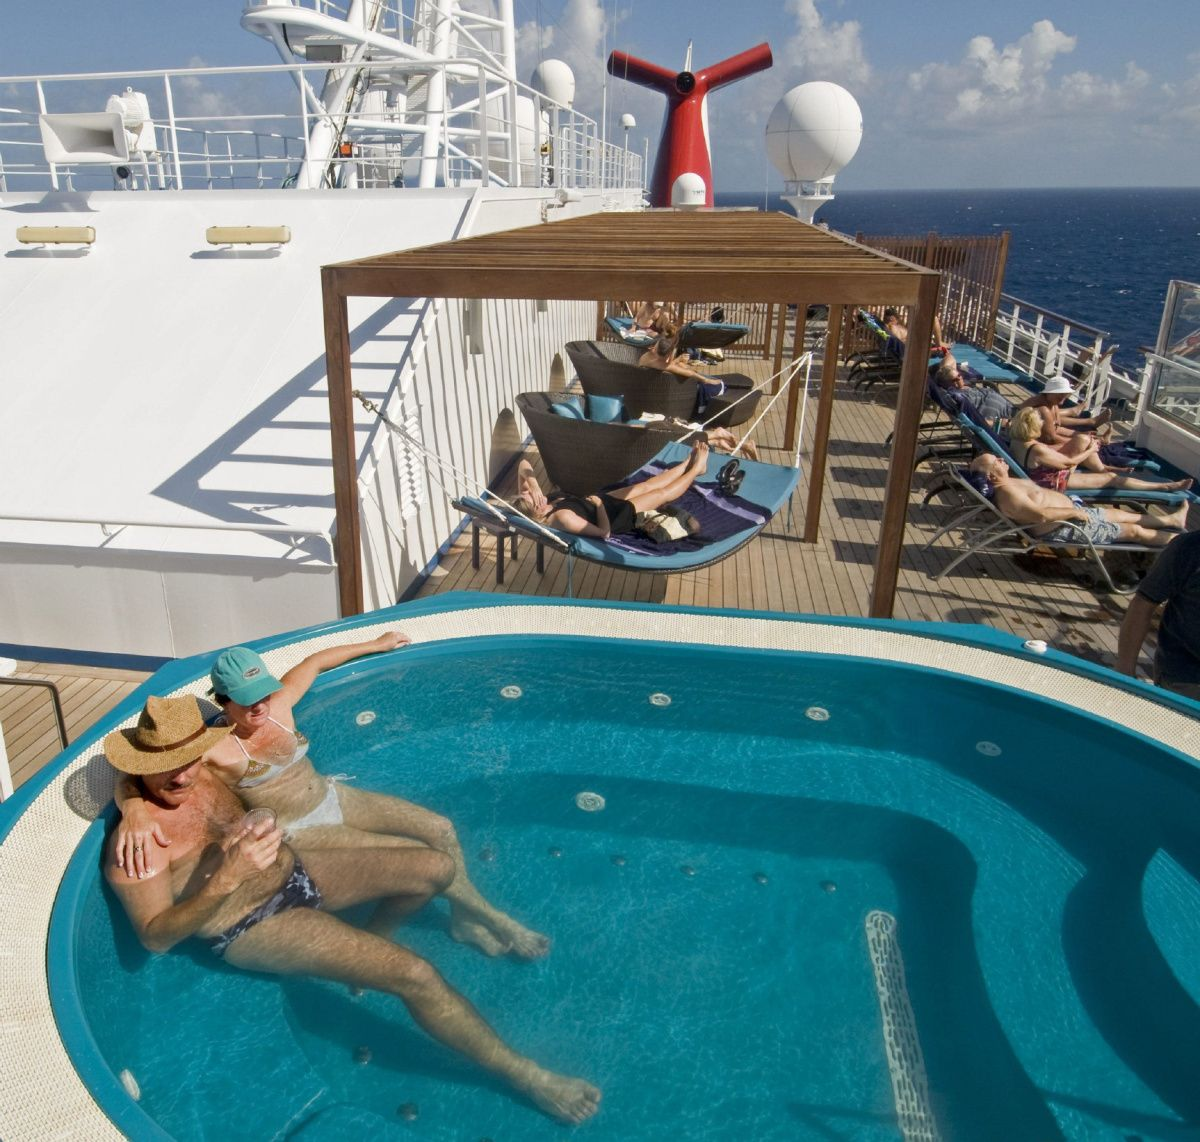 Cruise Travel New Trends For Cruising Carnival Liberty - Pictures of carnival liberty cruise ship